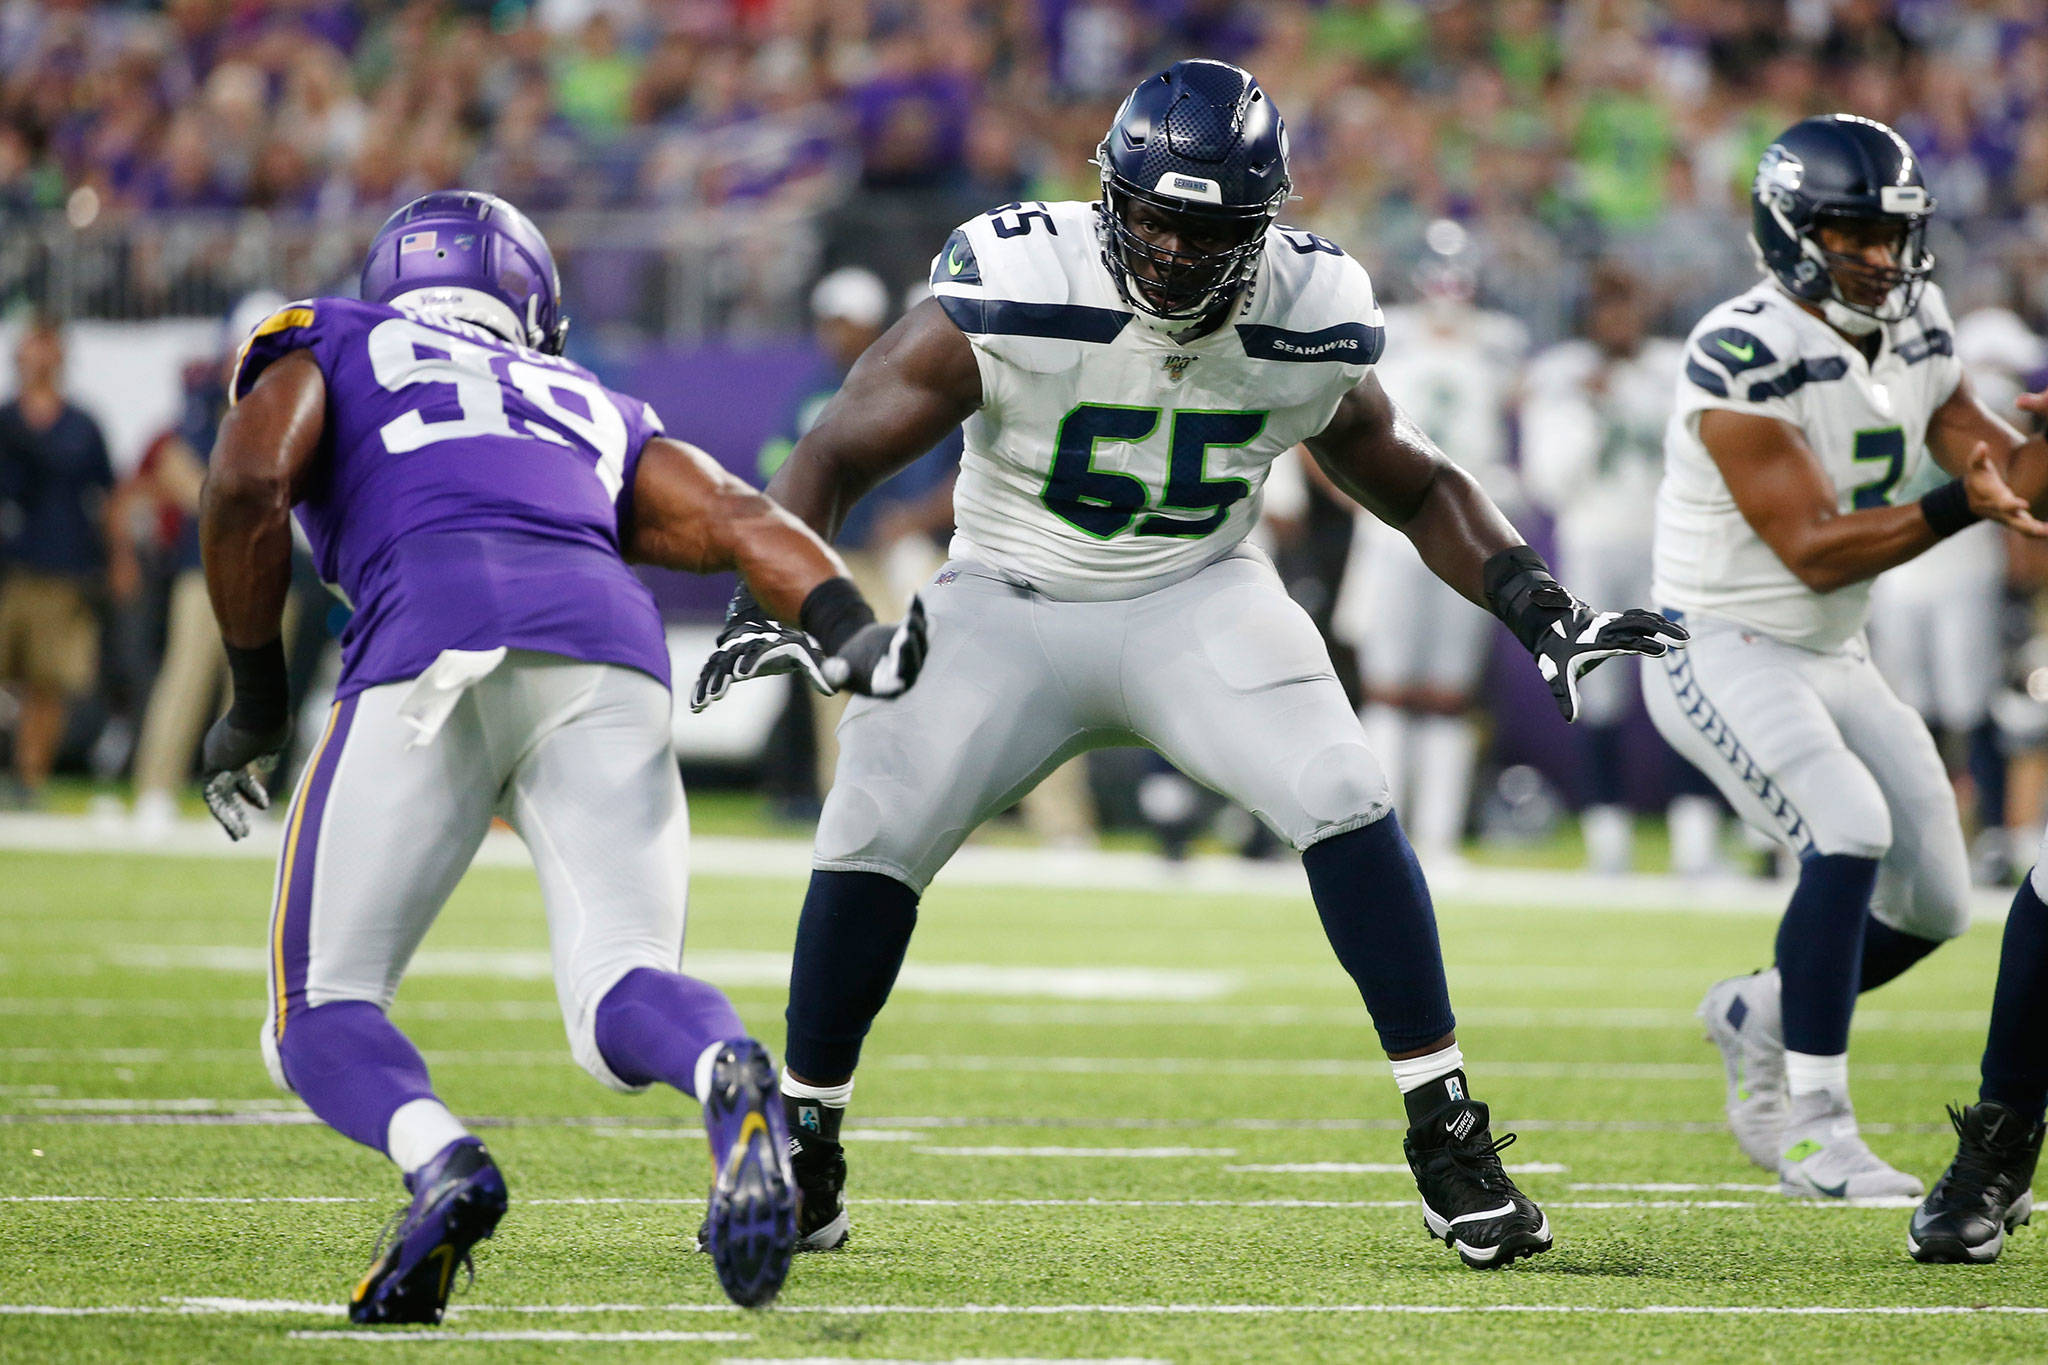 Seahawks tackle Germain Ifedi (65) looks to block Vikings defensive end Danielle Hunter during a preseason game on Aug. 18, 2019, in Minneapolis. Ifedi agreed to a free-agent deal with the Bears on March 25. (AP Photo/Bruce Kluckhohn)